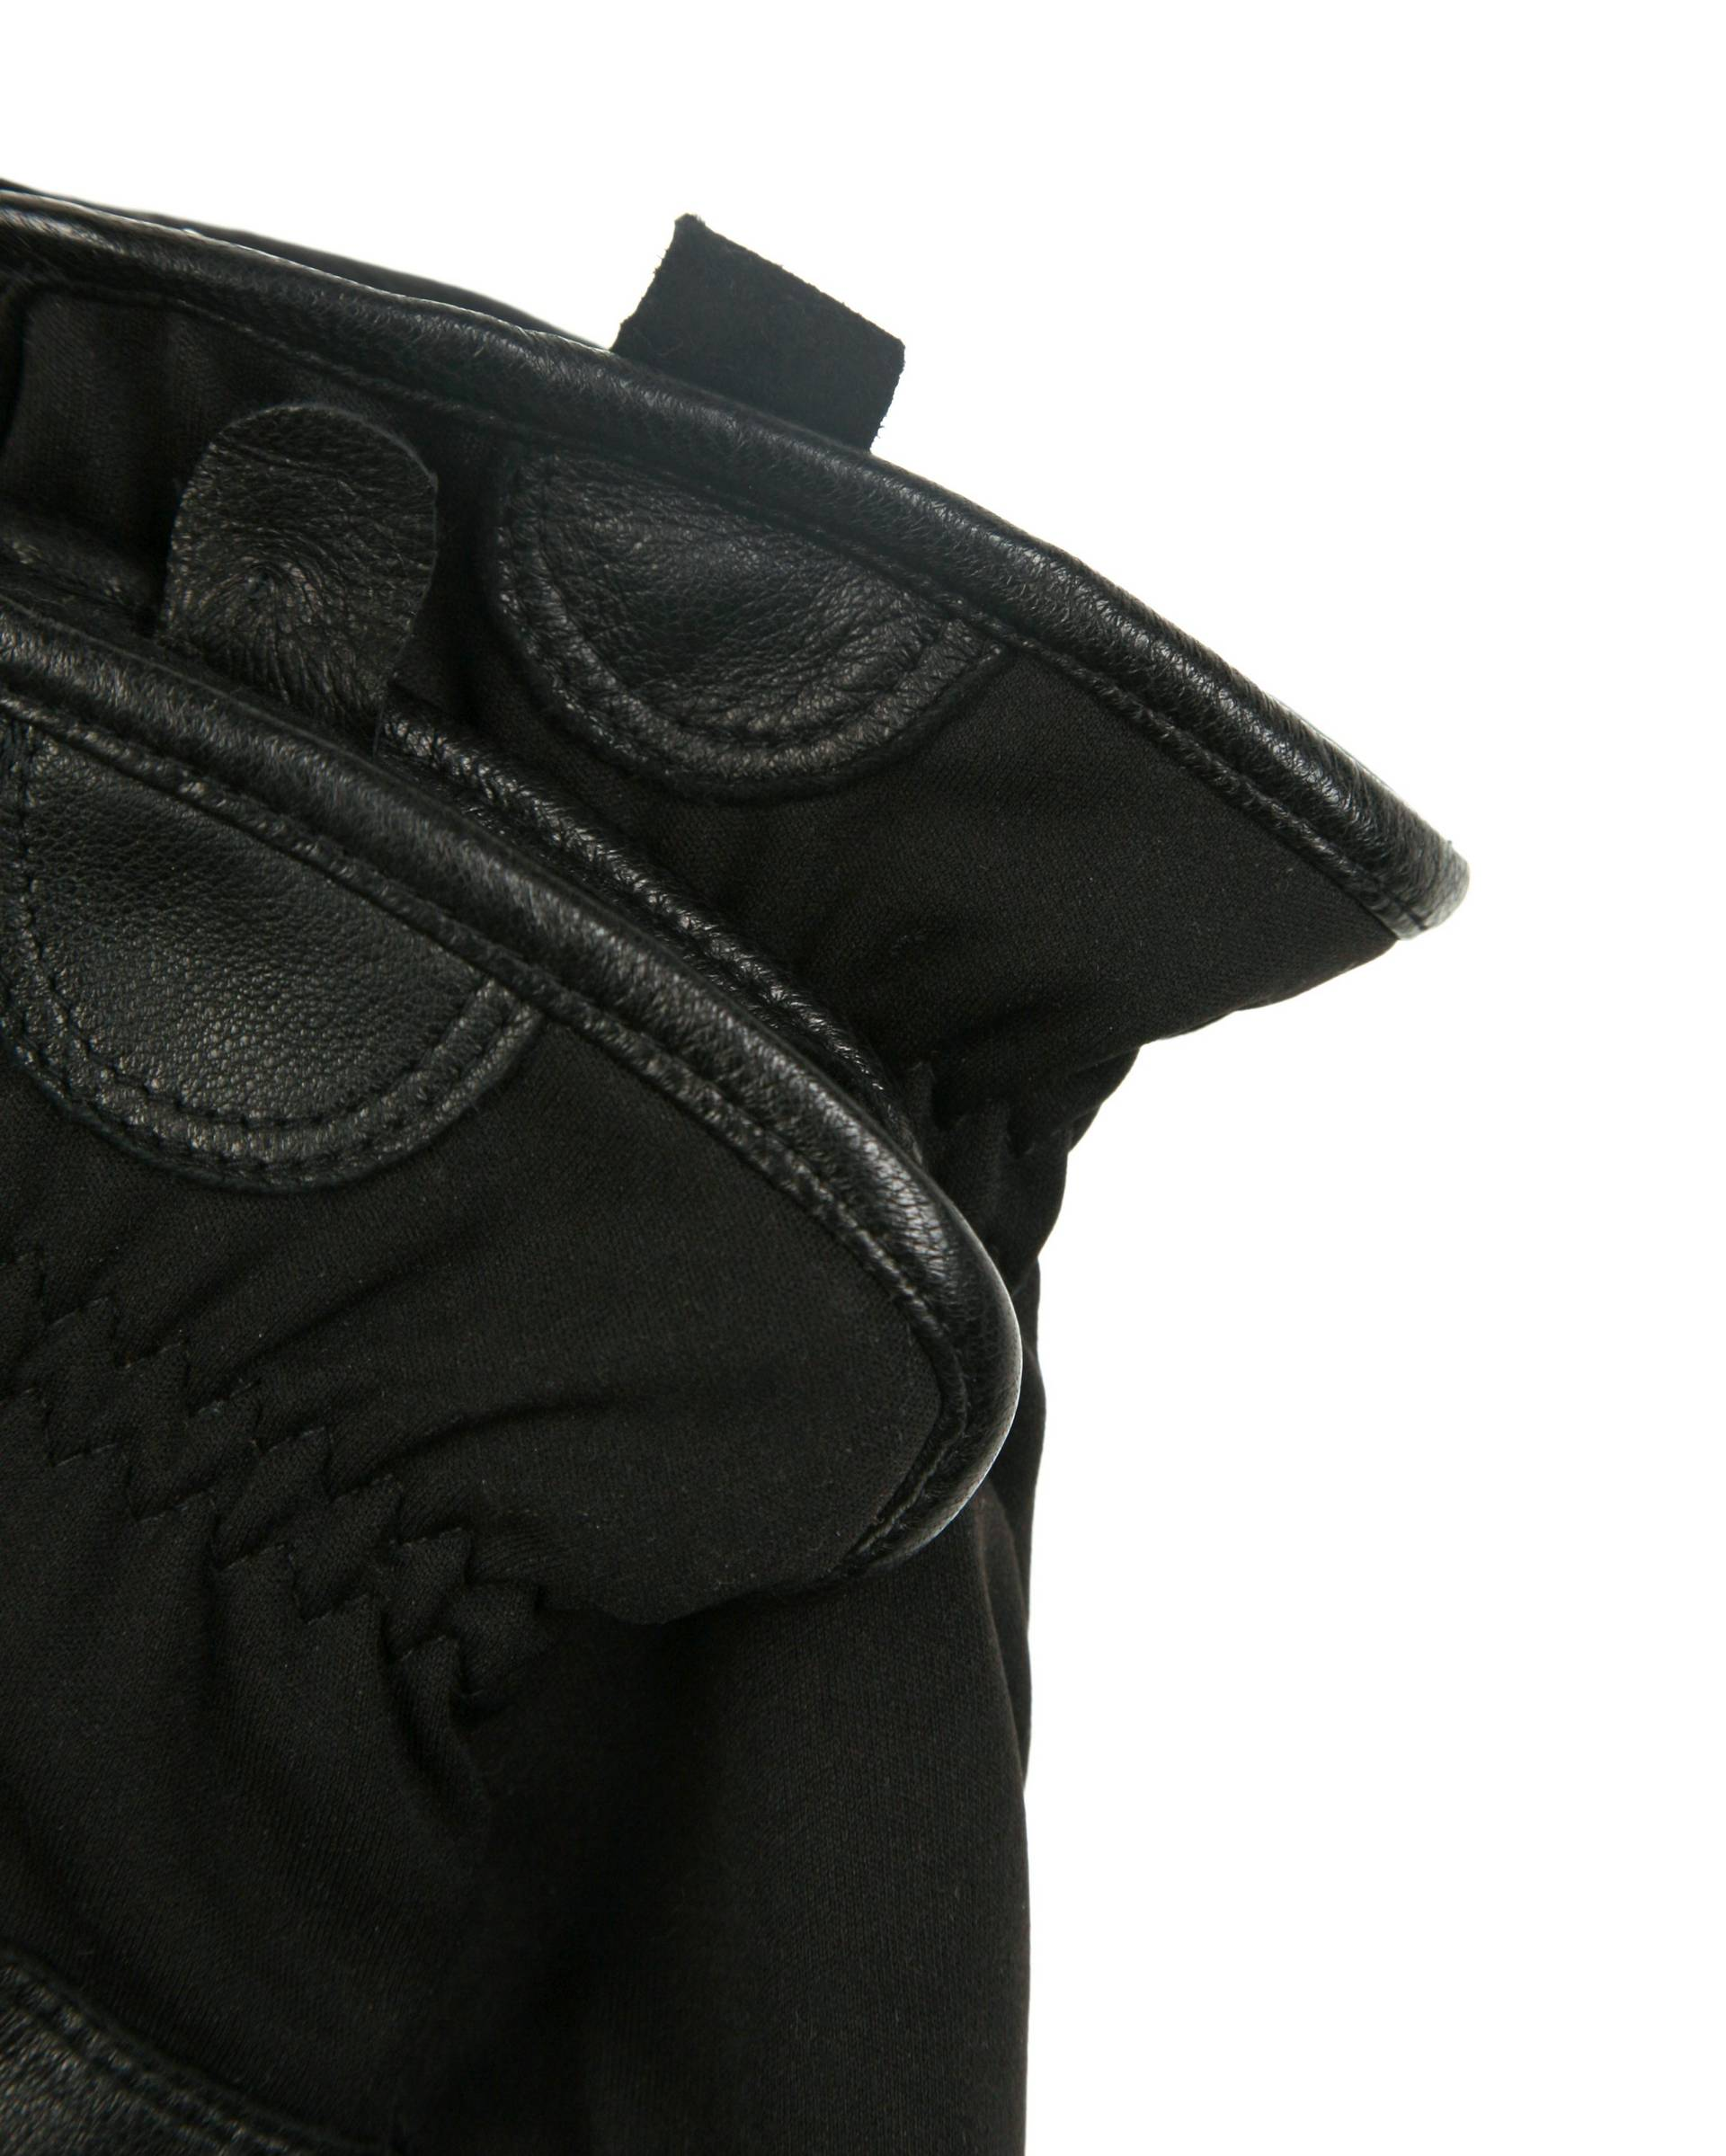 Перчатки Primaloft With Leather Black 2705 Gloves